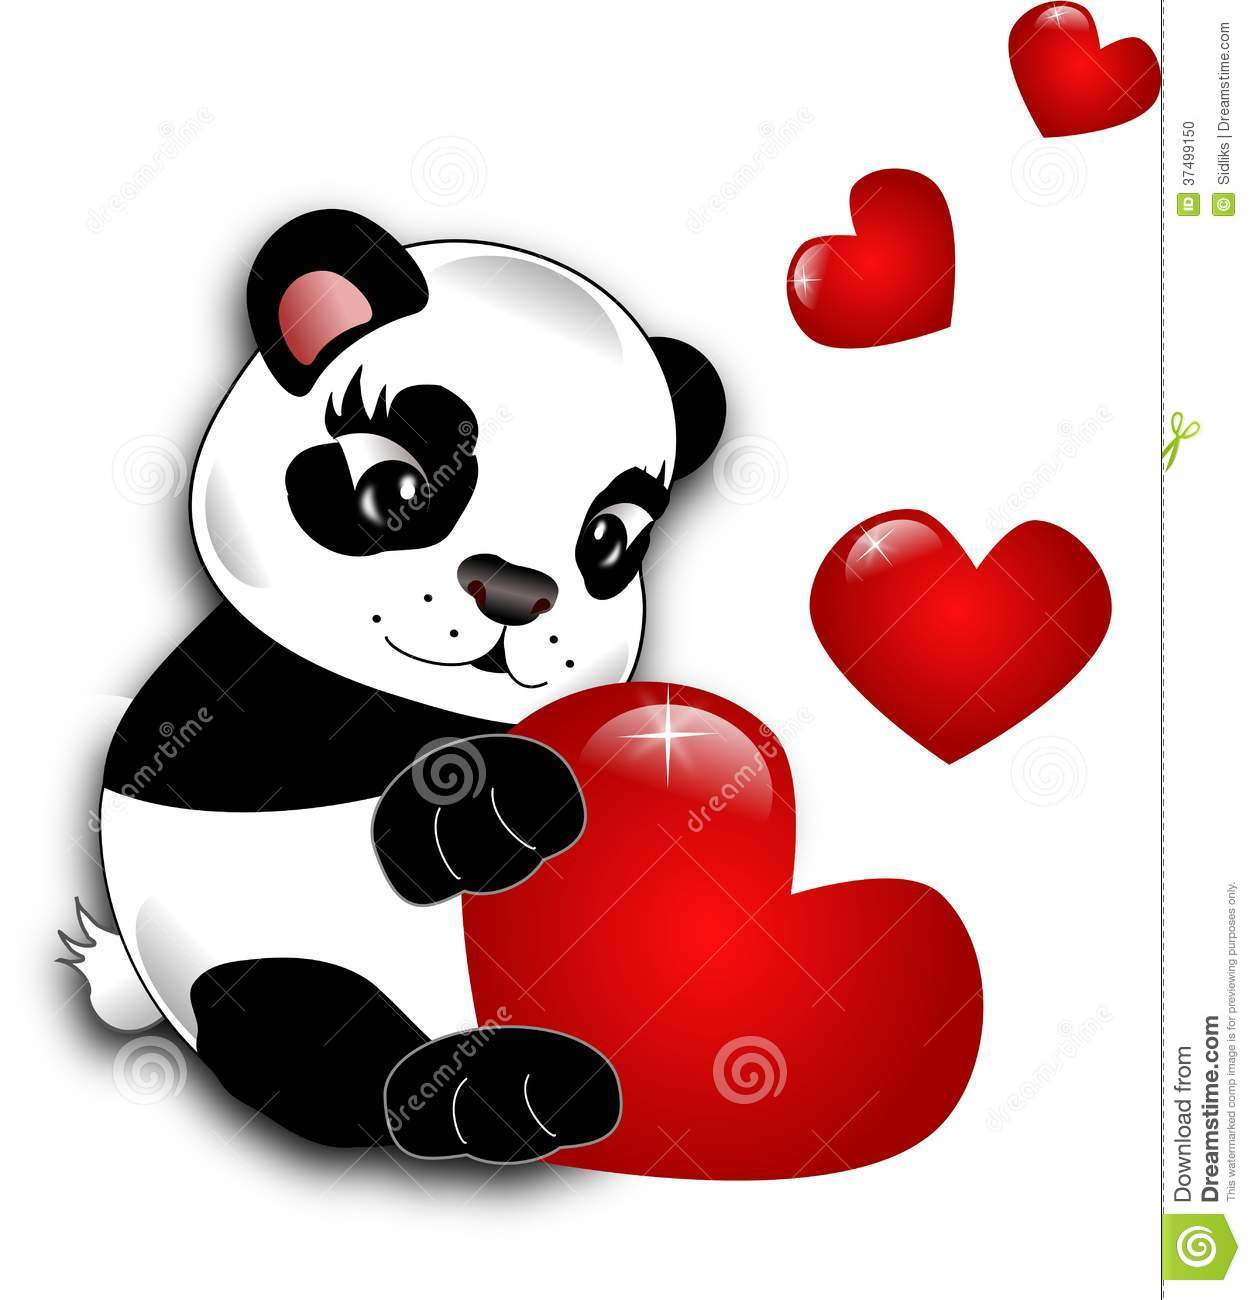 Small cute panda holding big red heart decorated with small hearts.